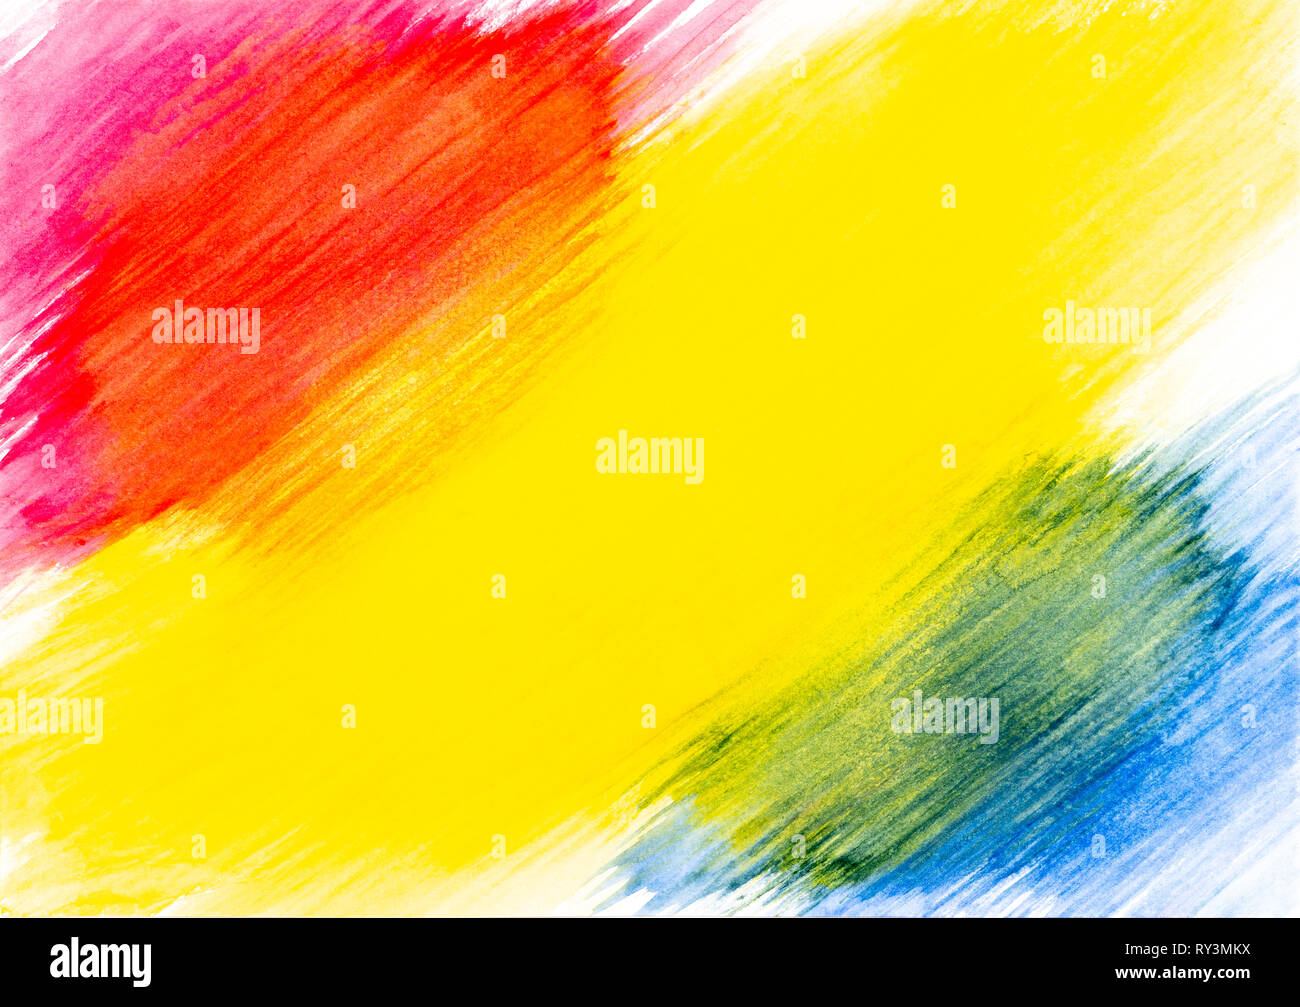 Abstract Red Yellow And Blue Watercolor Painted On White